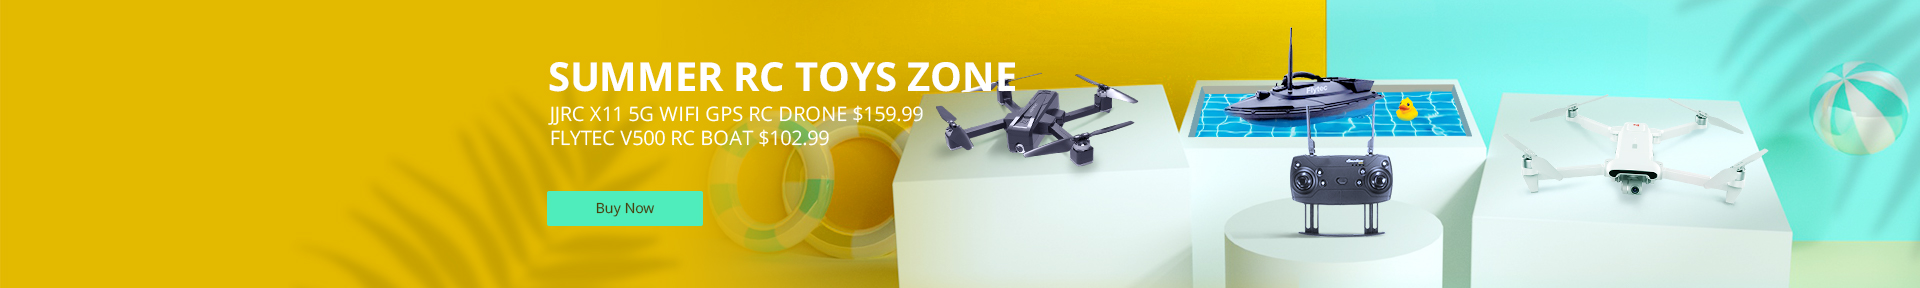 Drones, Toys & Hobbies - Best Drones, Toys & Hobbies Online